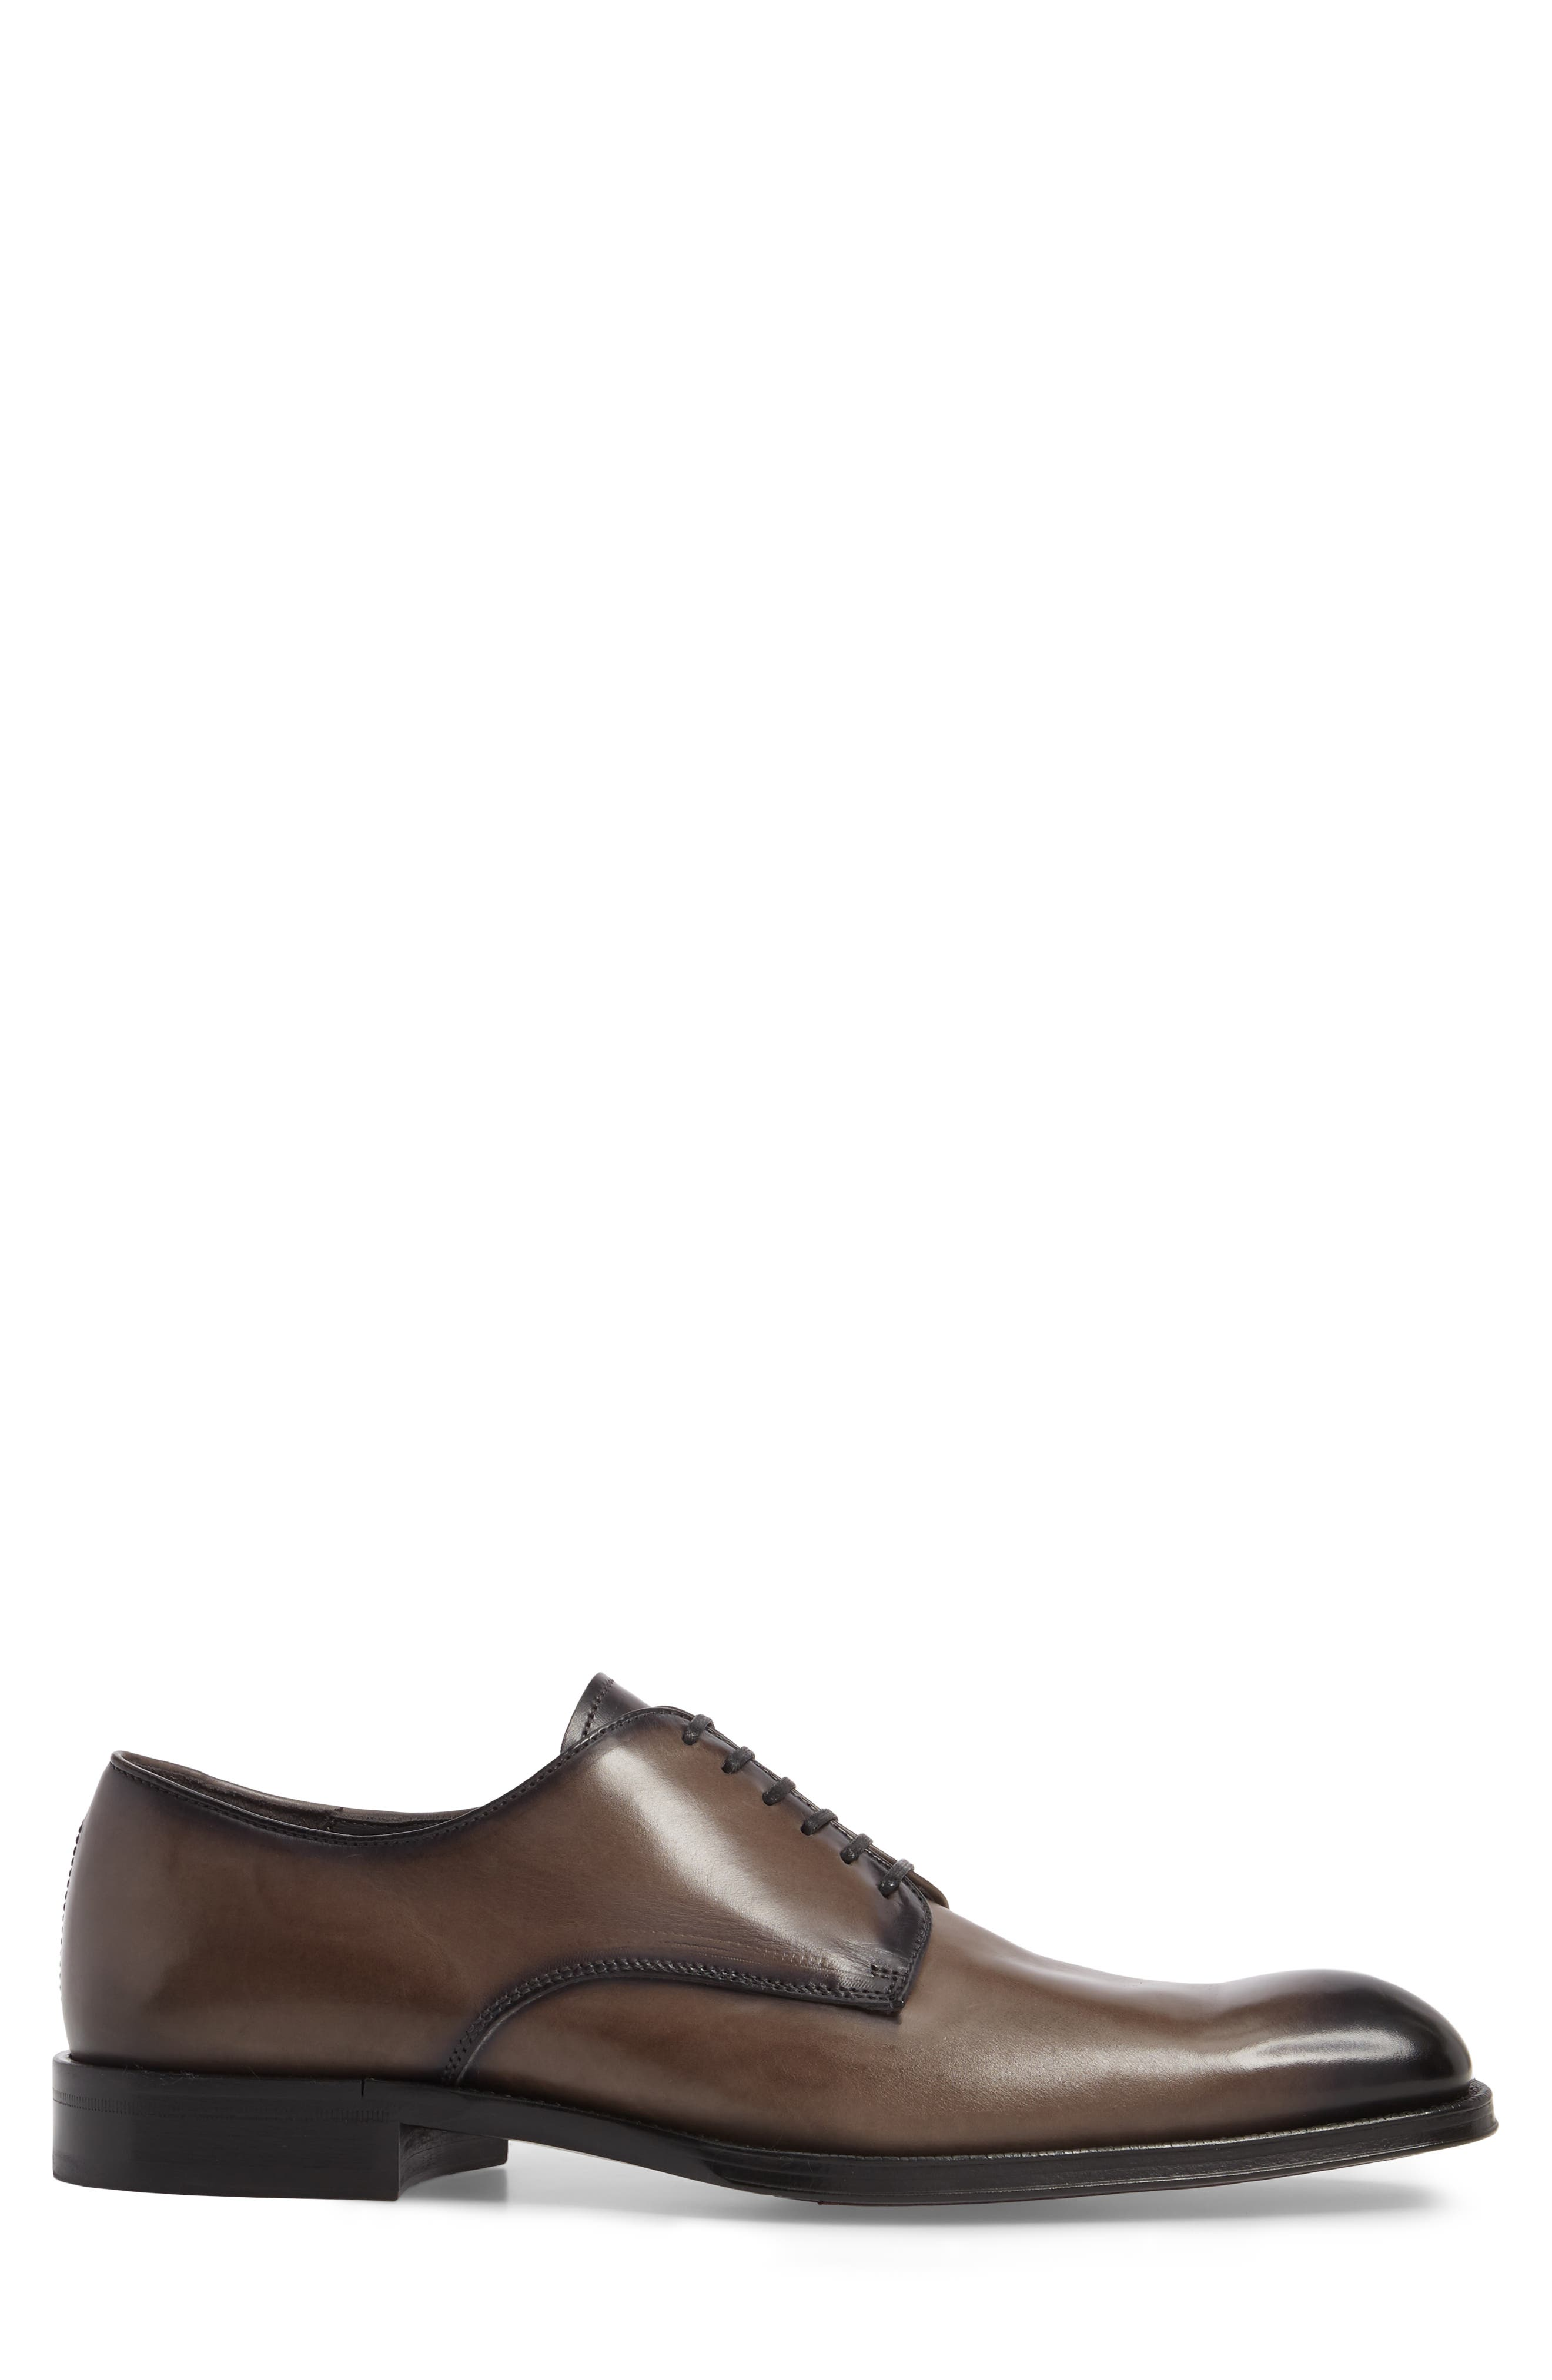 Academy Plain Toe Derby,                             Alternate thumbnail 3, color,                             GREY LEATHER